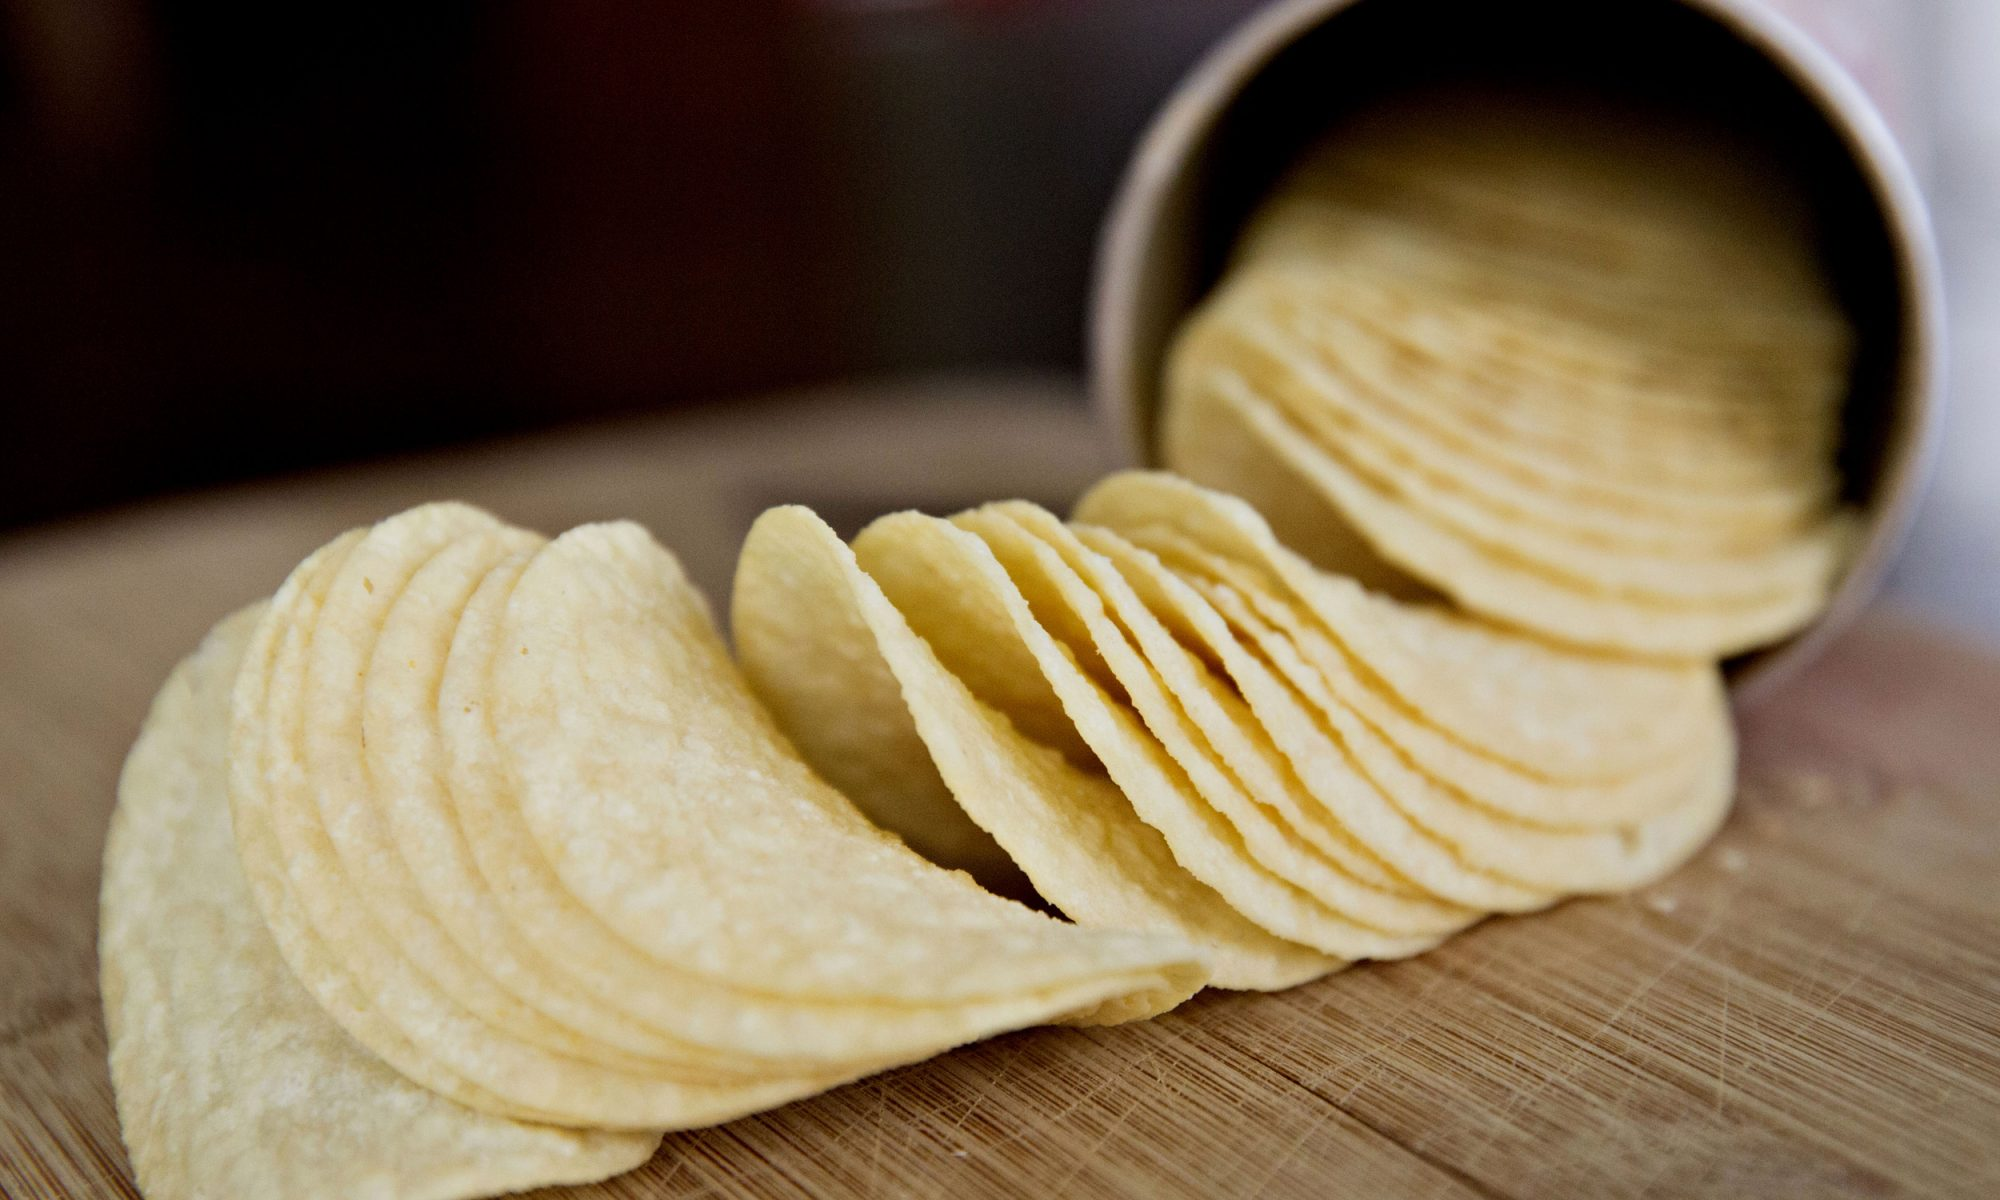 where are pringles chips made